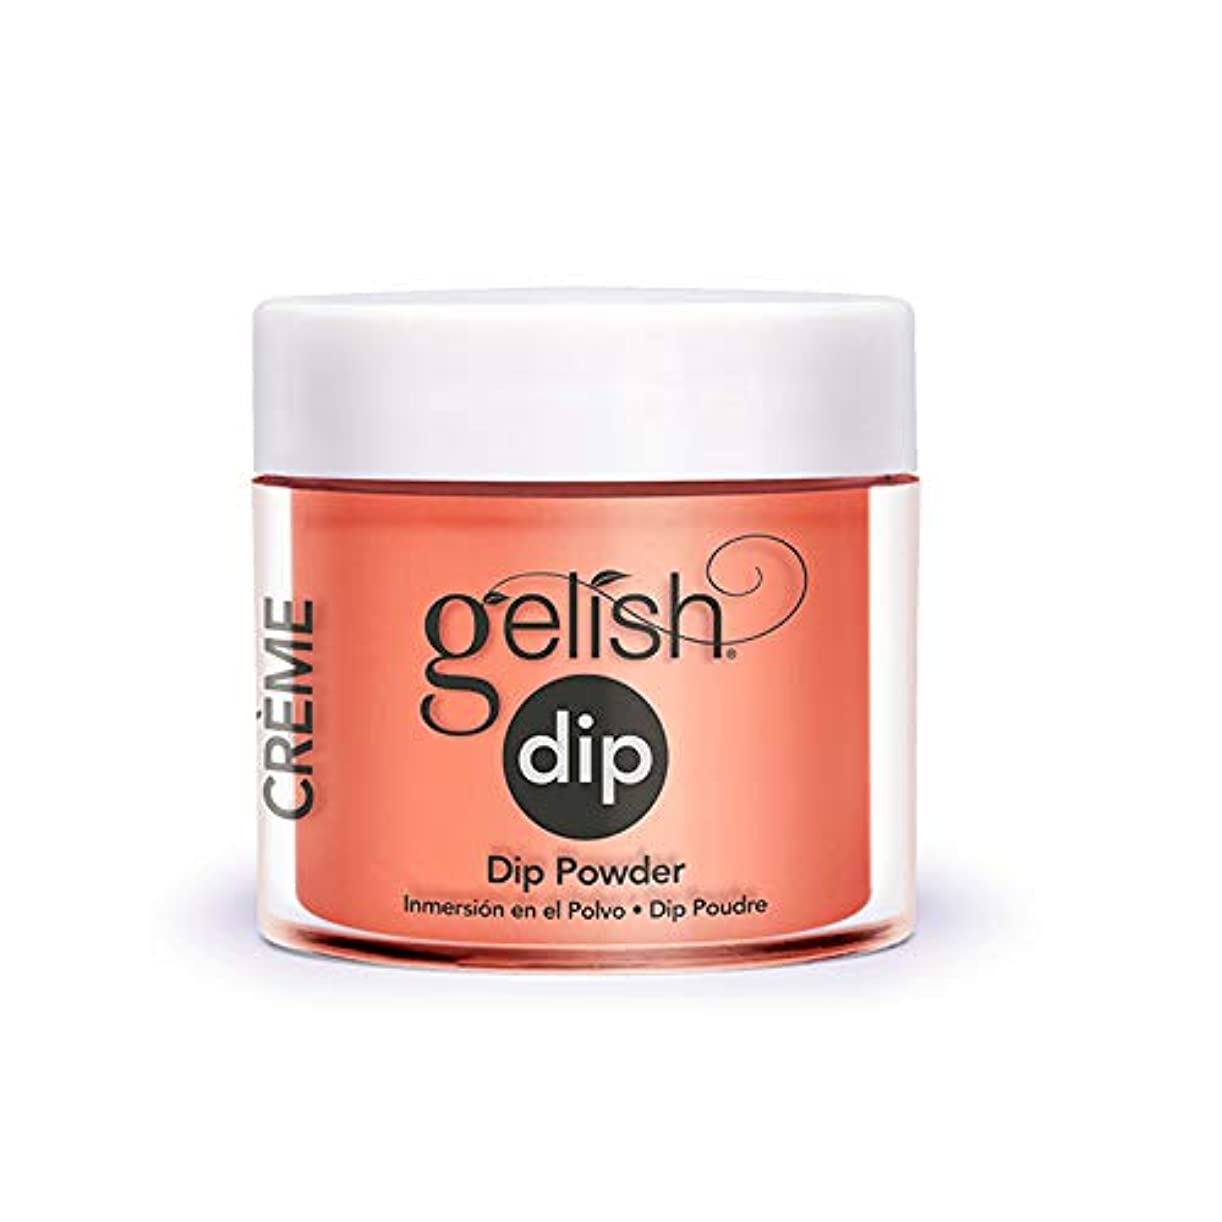 関係する部分偽物Harmony Gelish - Acrylic Dip Powder - Sweet Morning Dew - 23g / 0.8oz